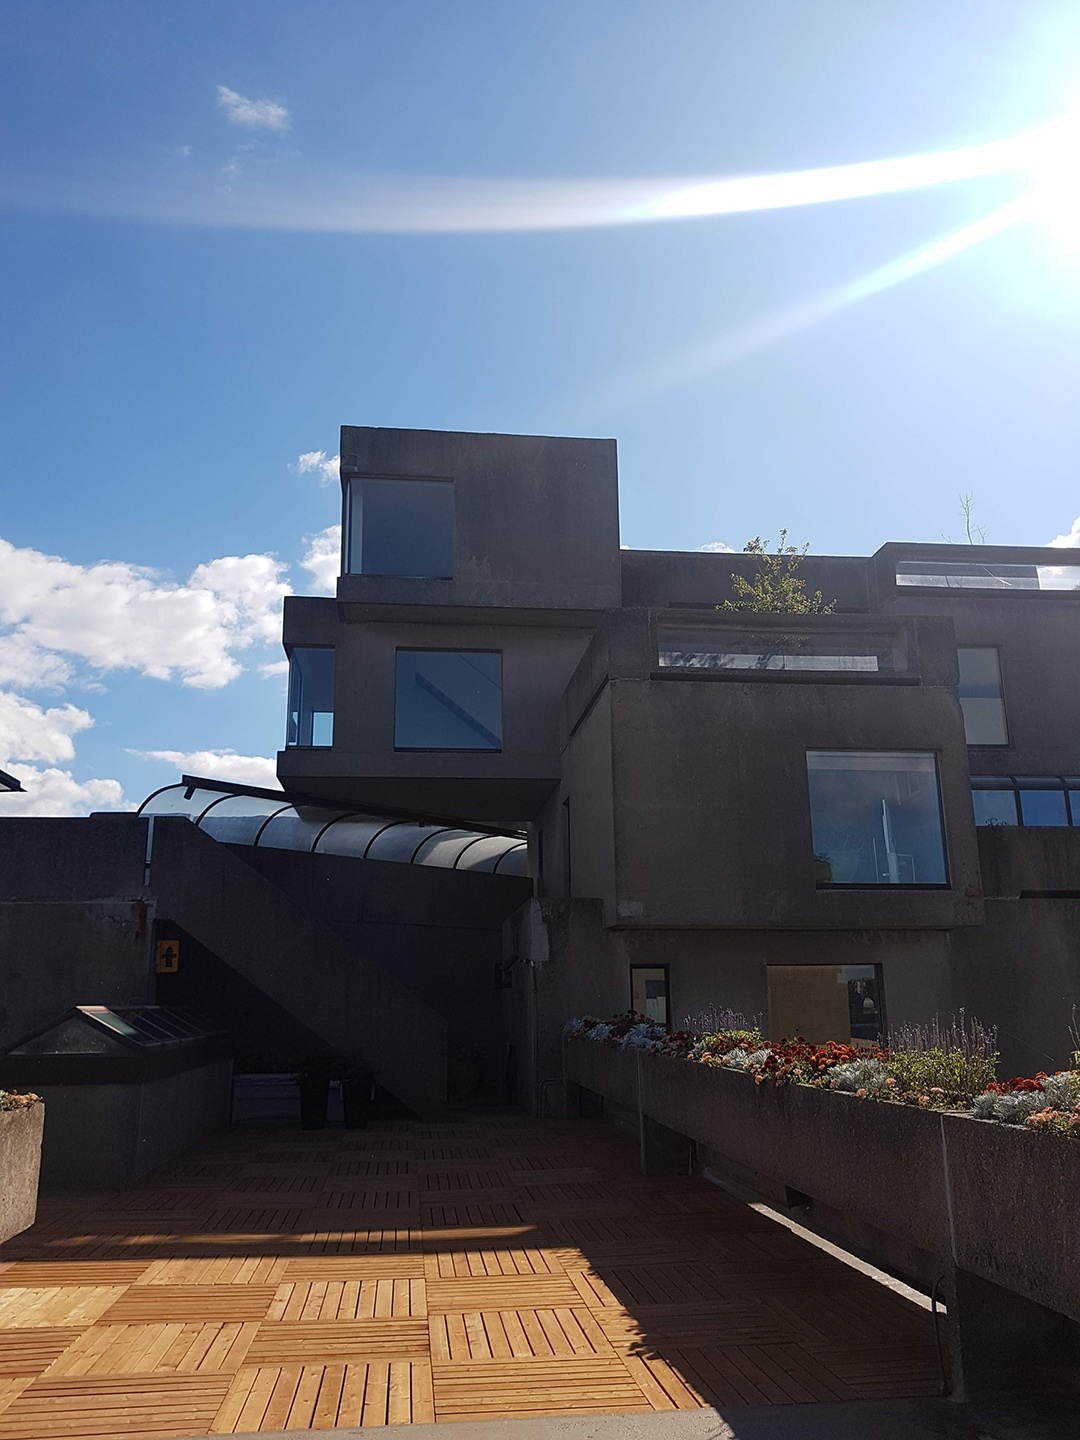 A view of Habitat 67's exterior shared spaces